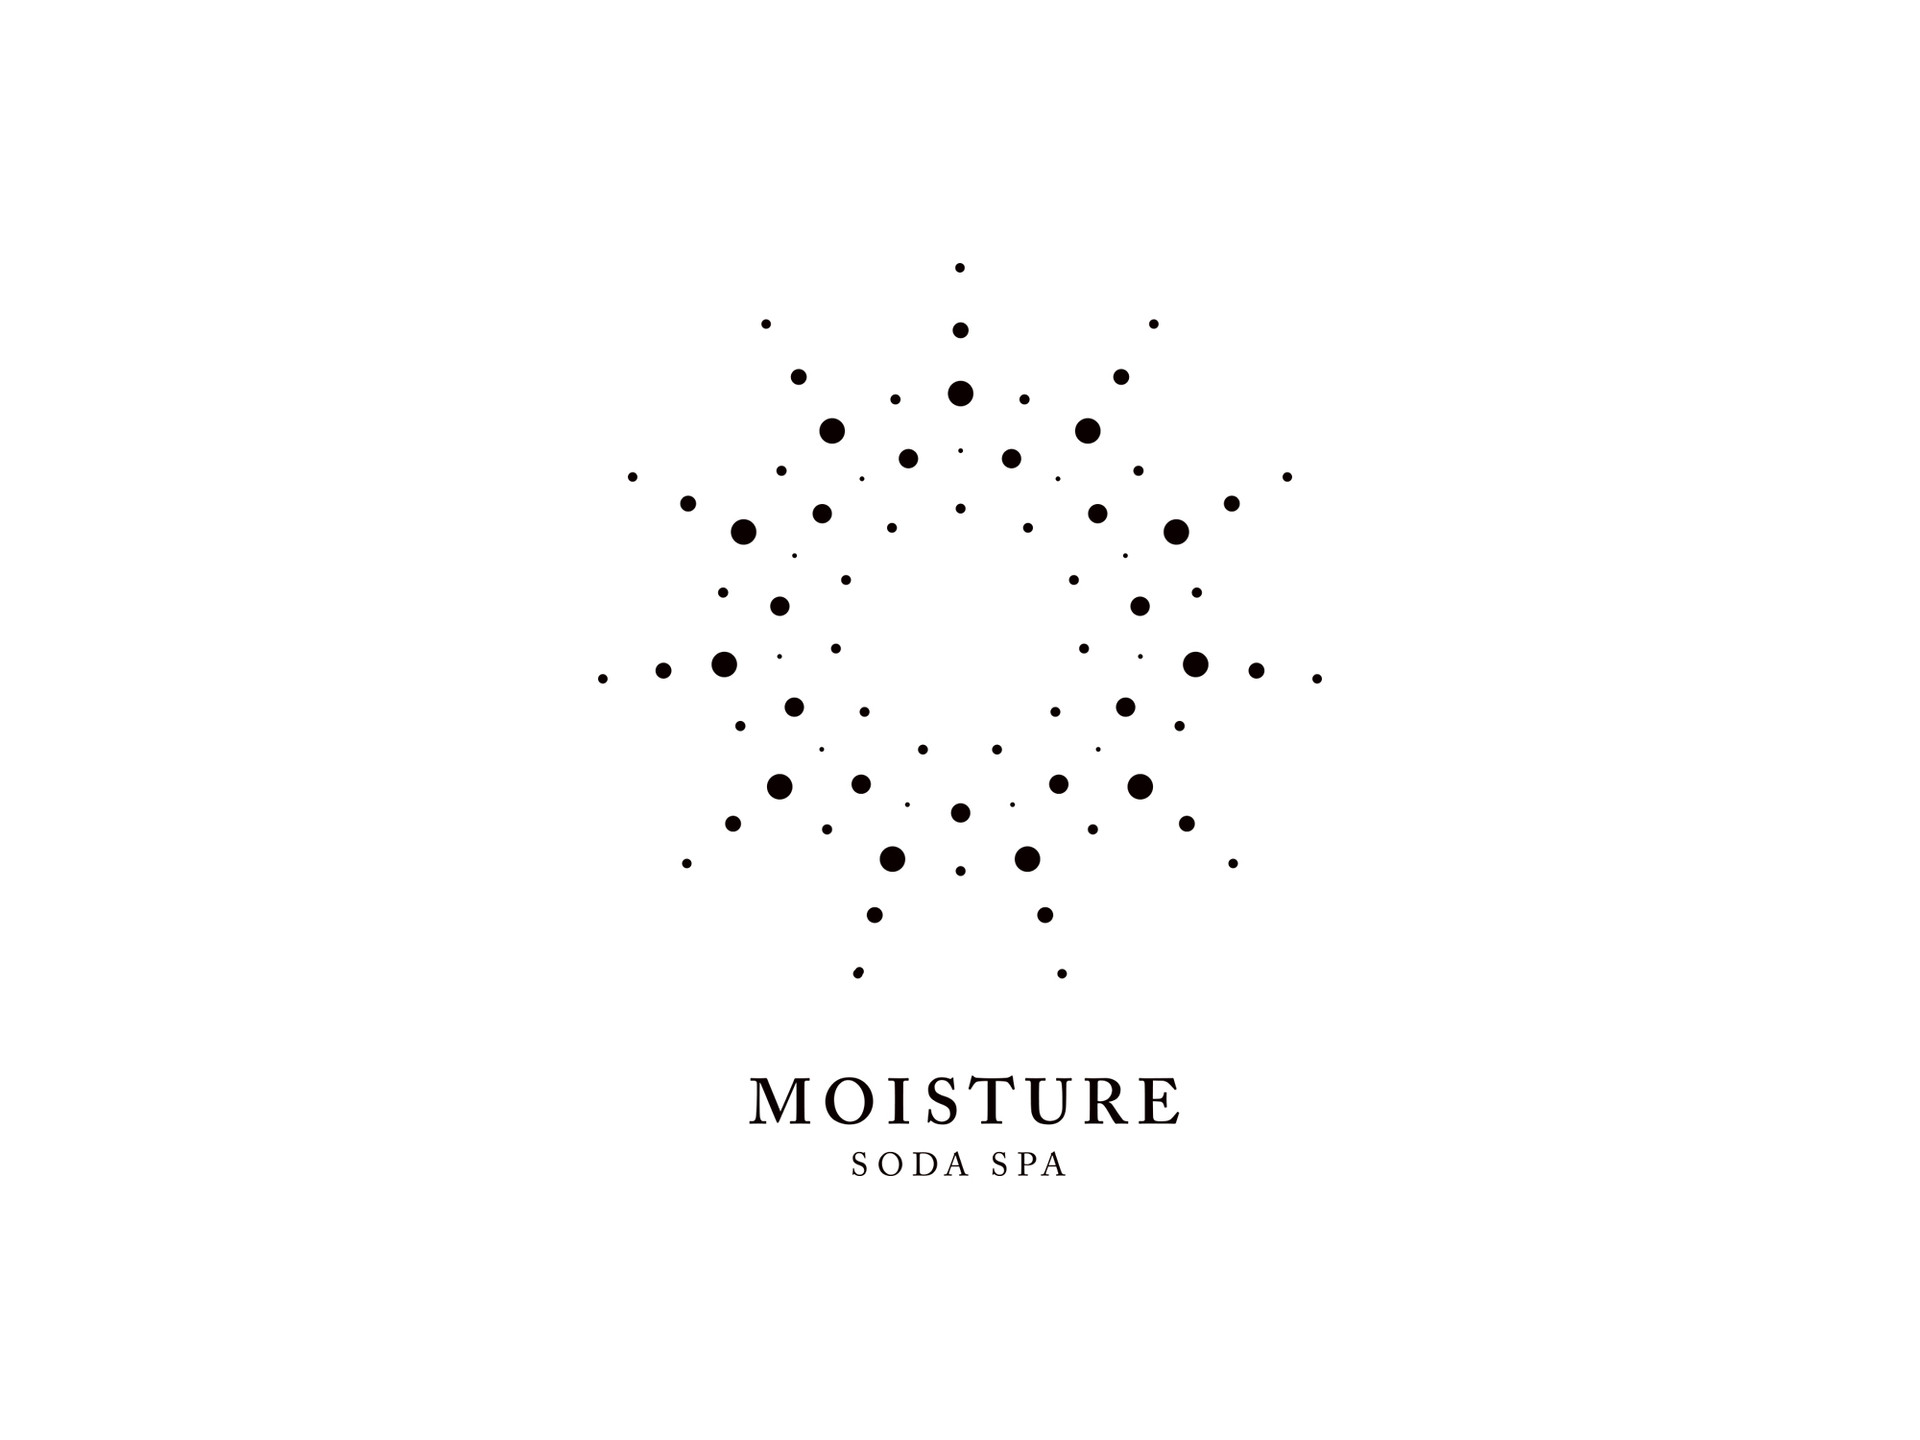 Logo Design for MOISTURE Soda Spa